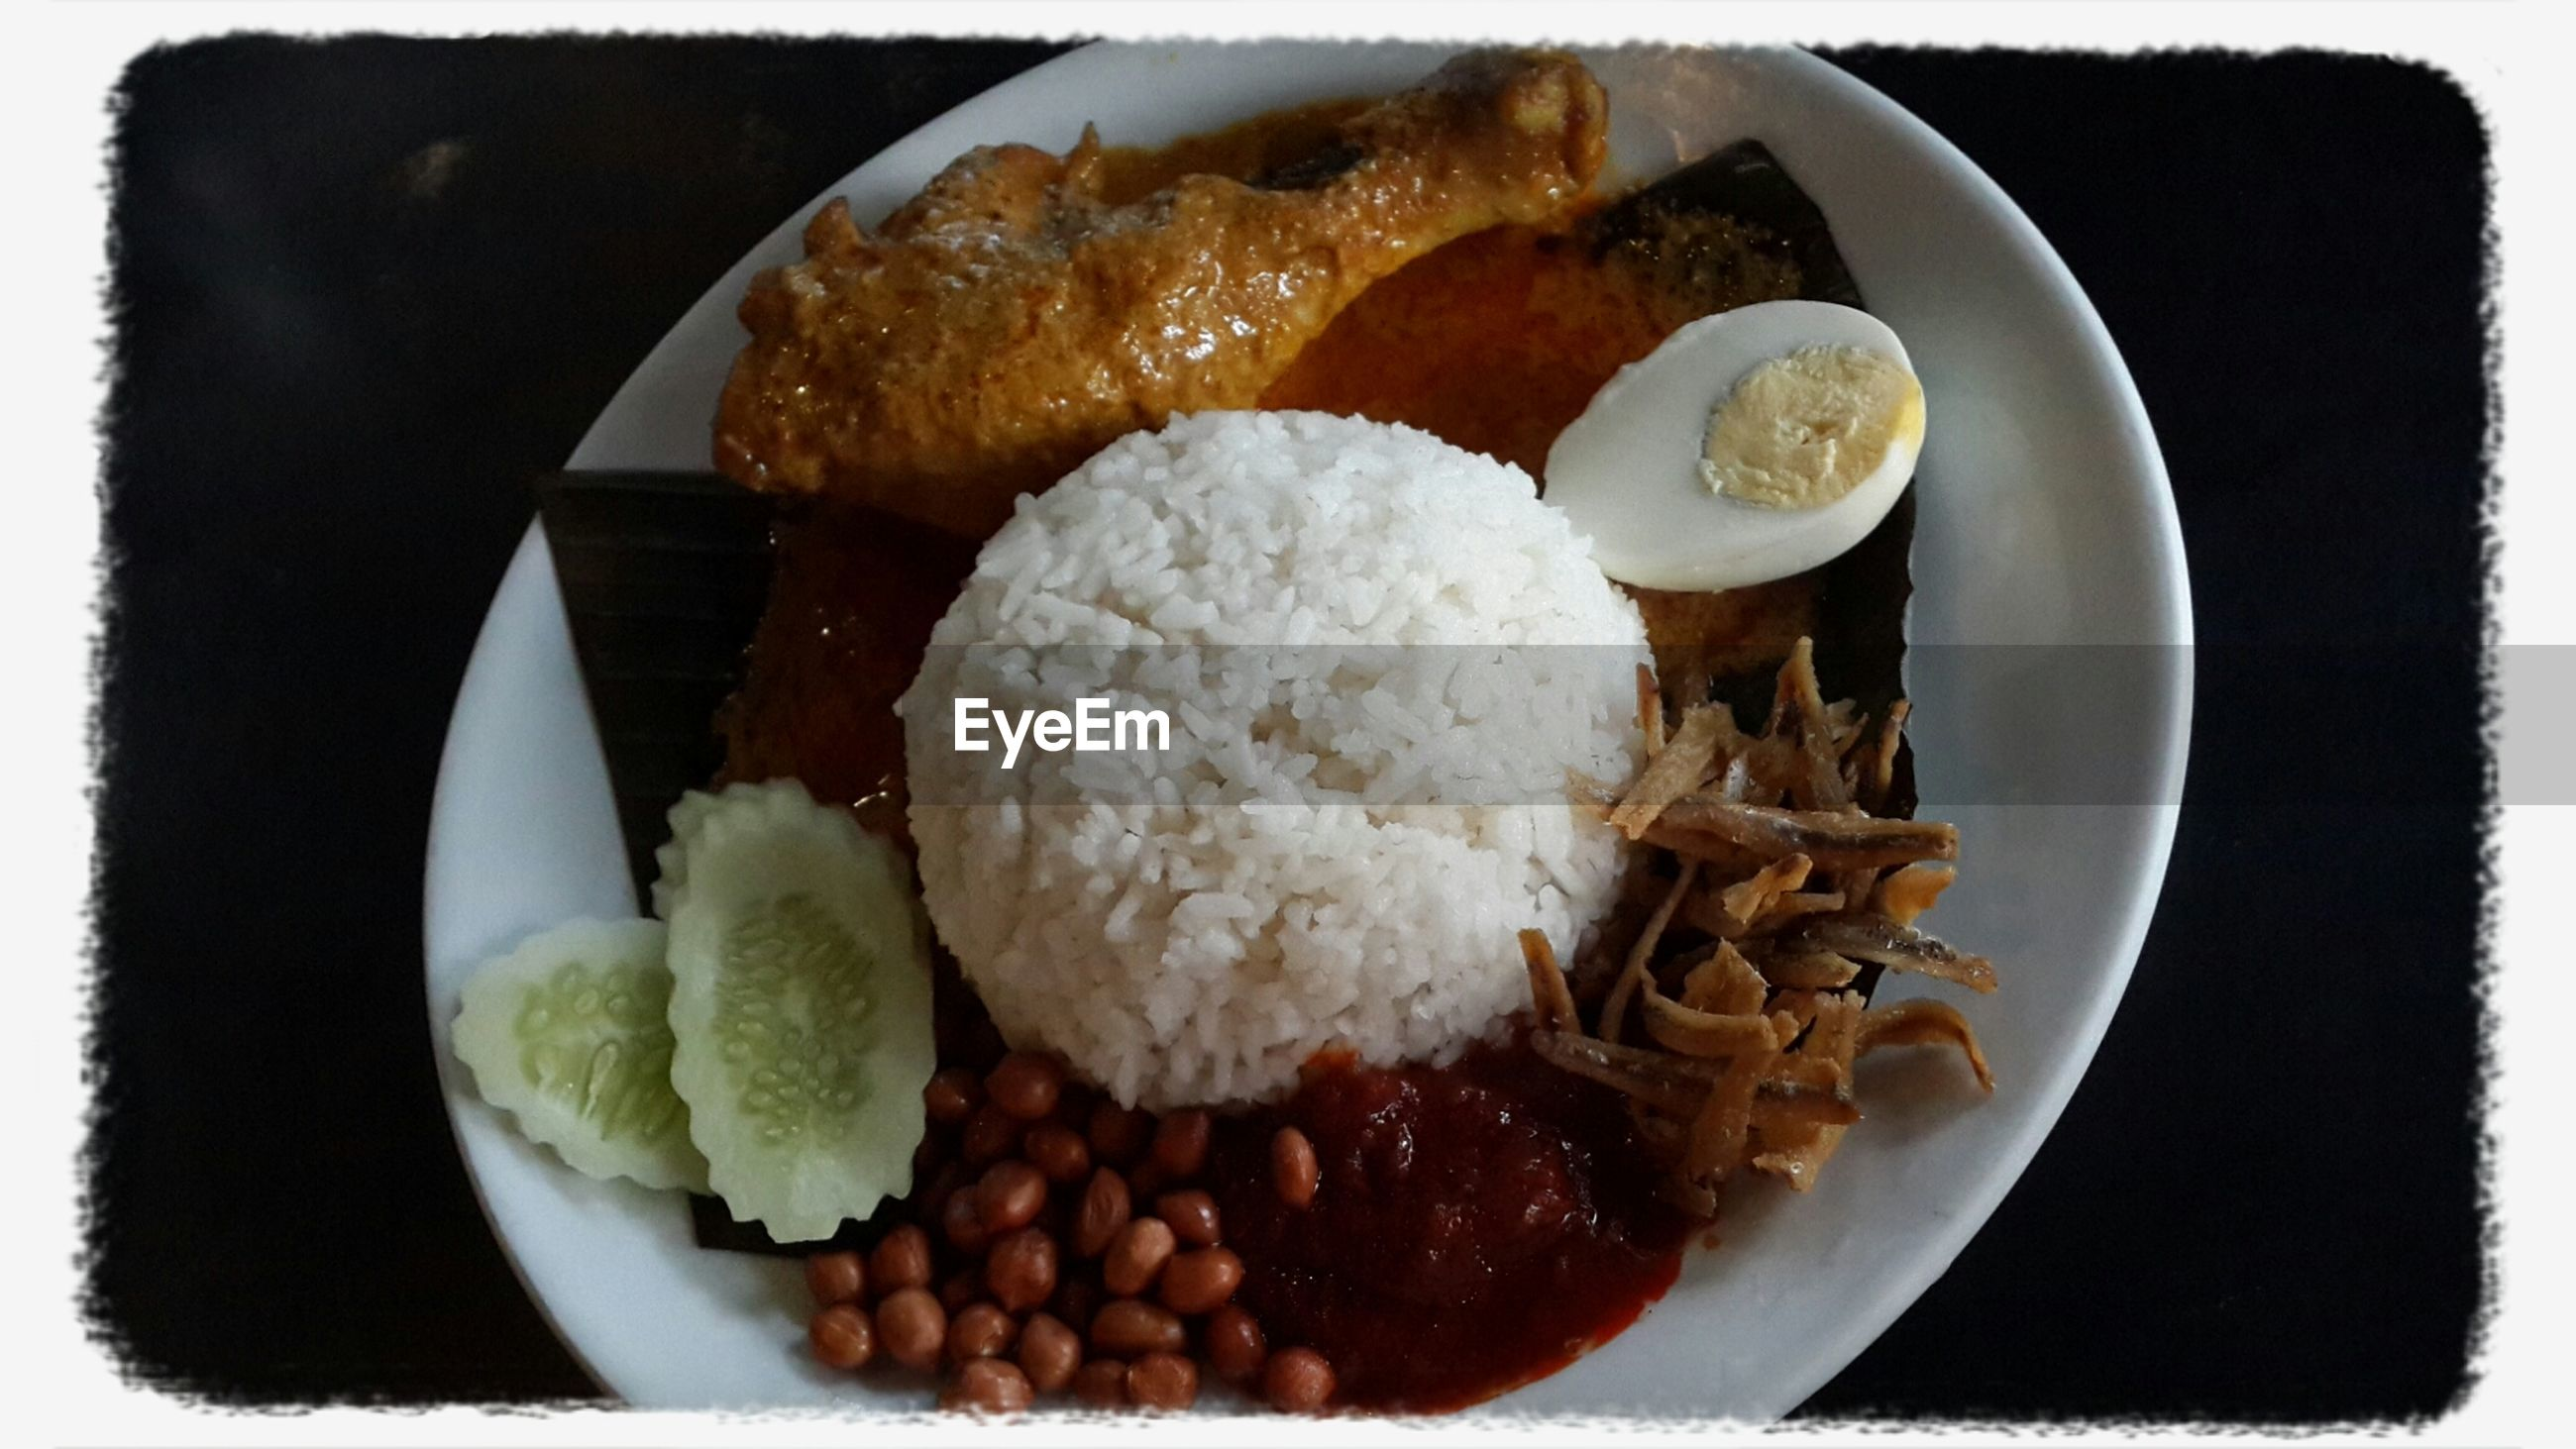 food and drink, food, freshness, ready-to-eat, plate, indoors, still life, healthy eating, meal, serving size, indulgence, transfer print, close-up, high angle view, table, served, breakfast, bowl, meat, auto post production filter